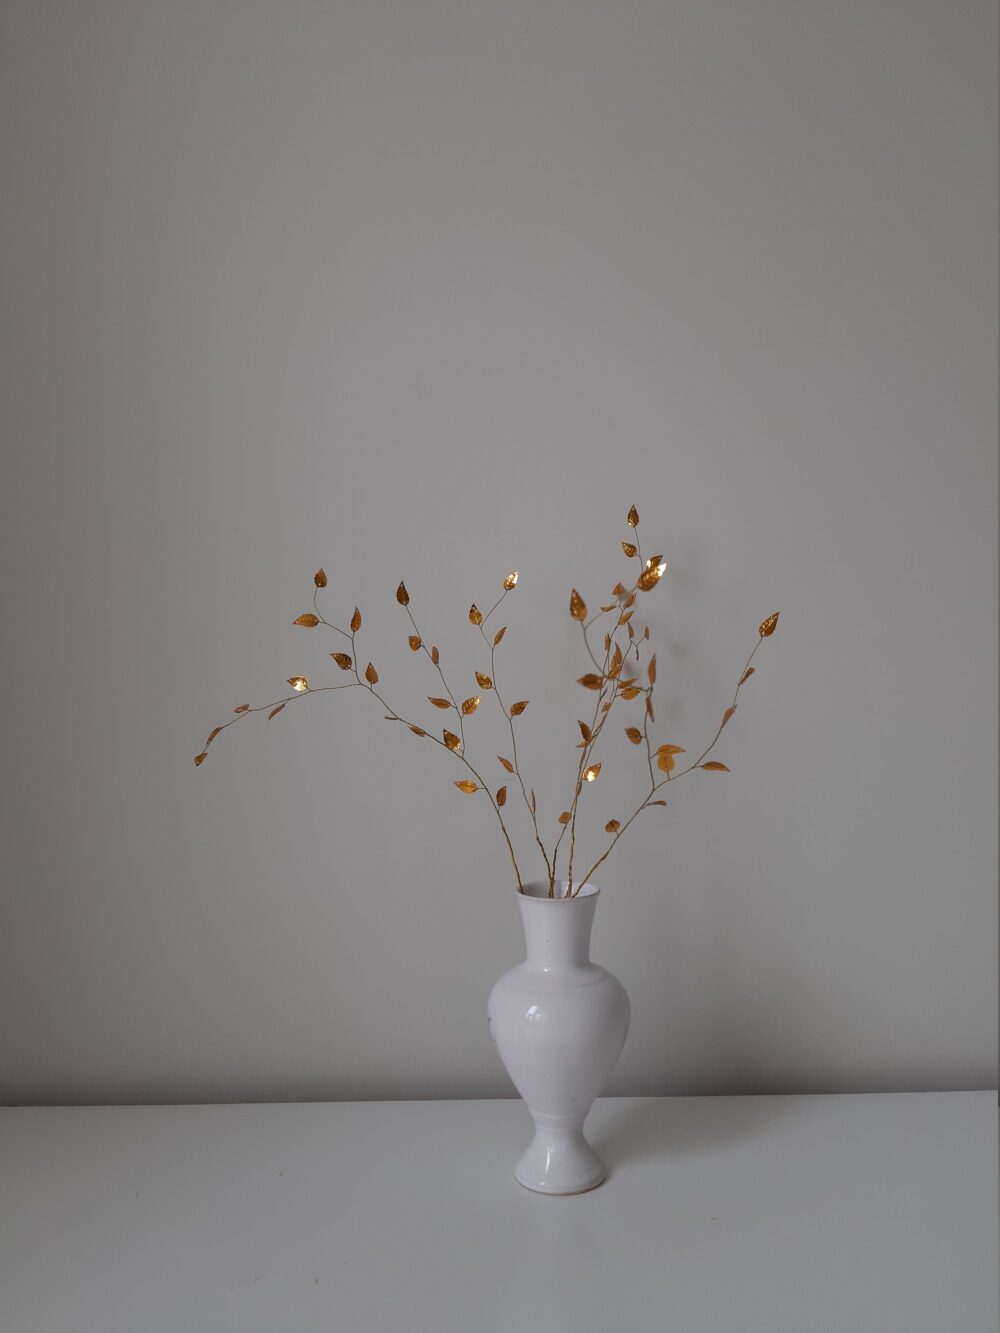 Wedding Centerpiece Fall Wedding Decor Autumn Decorations Table Branches For Vase Gold Artificial Minimal